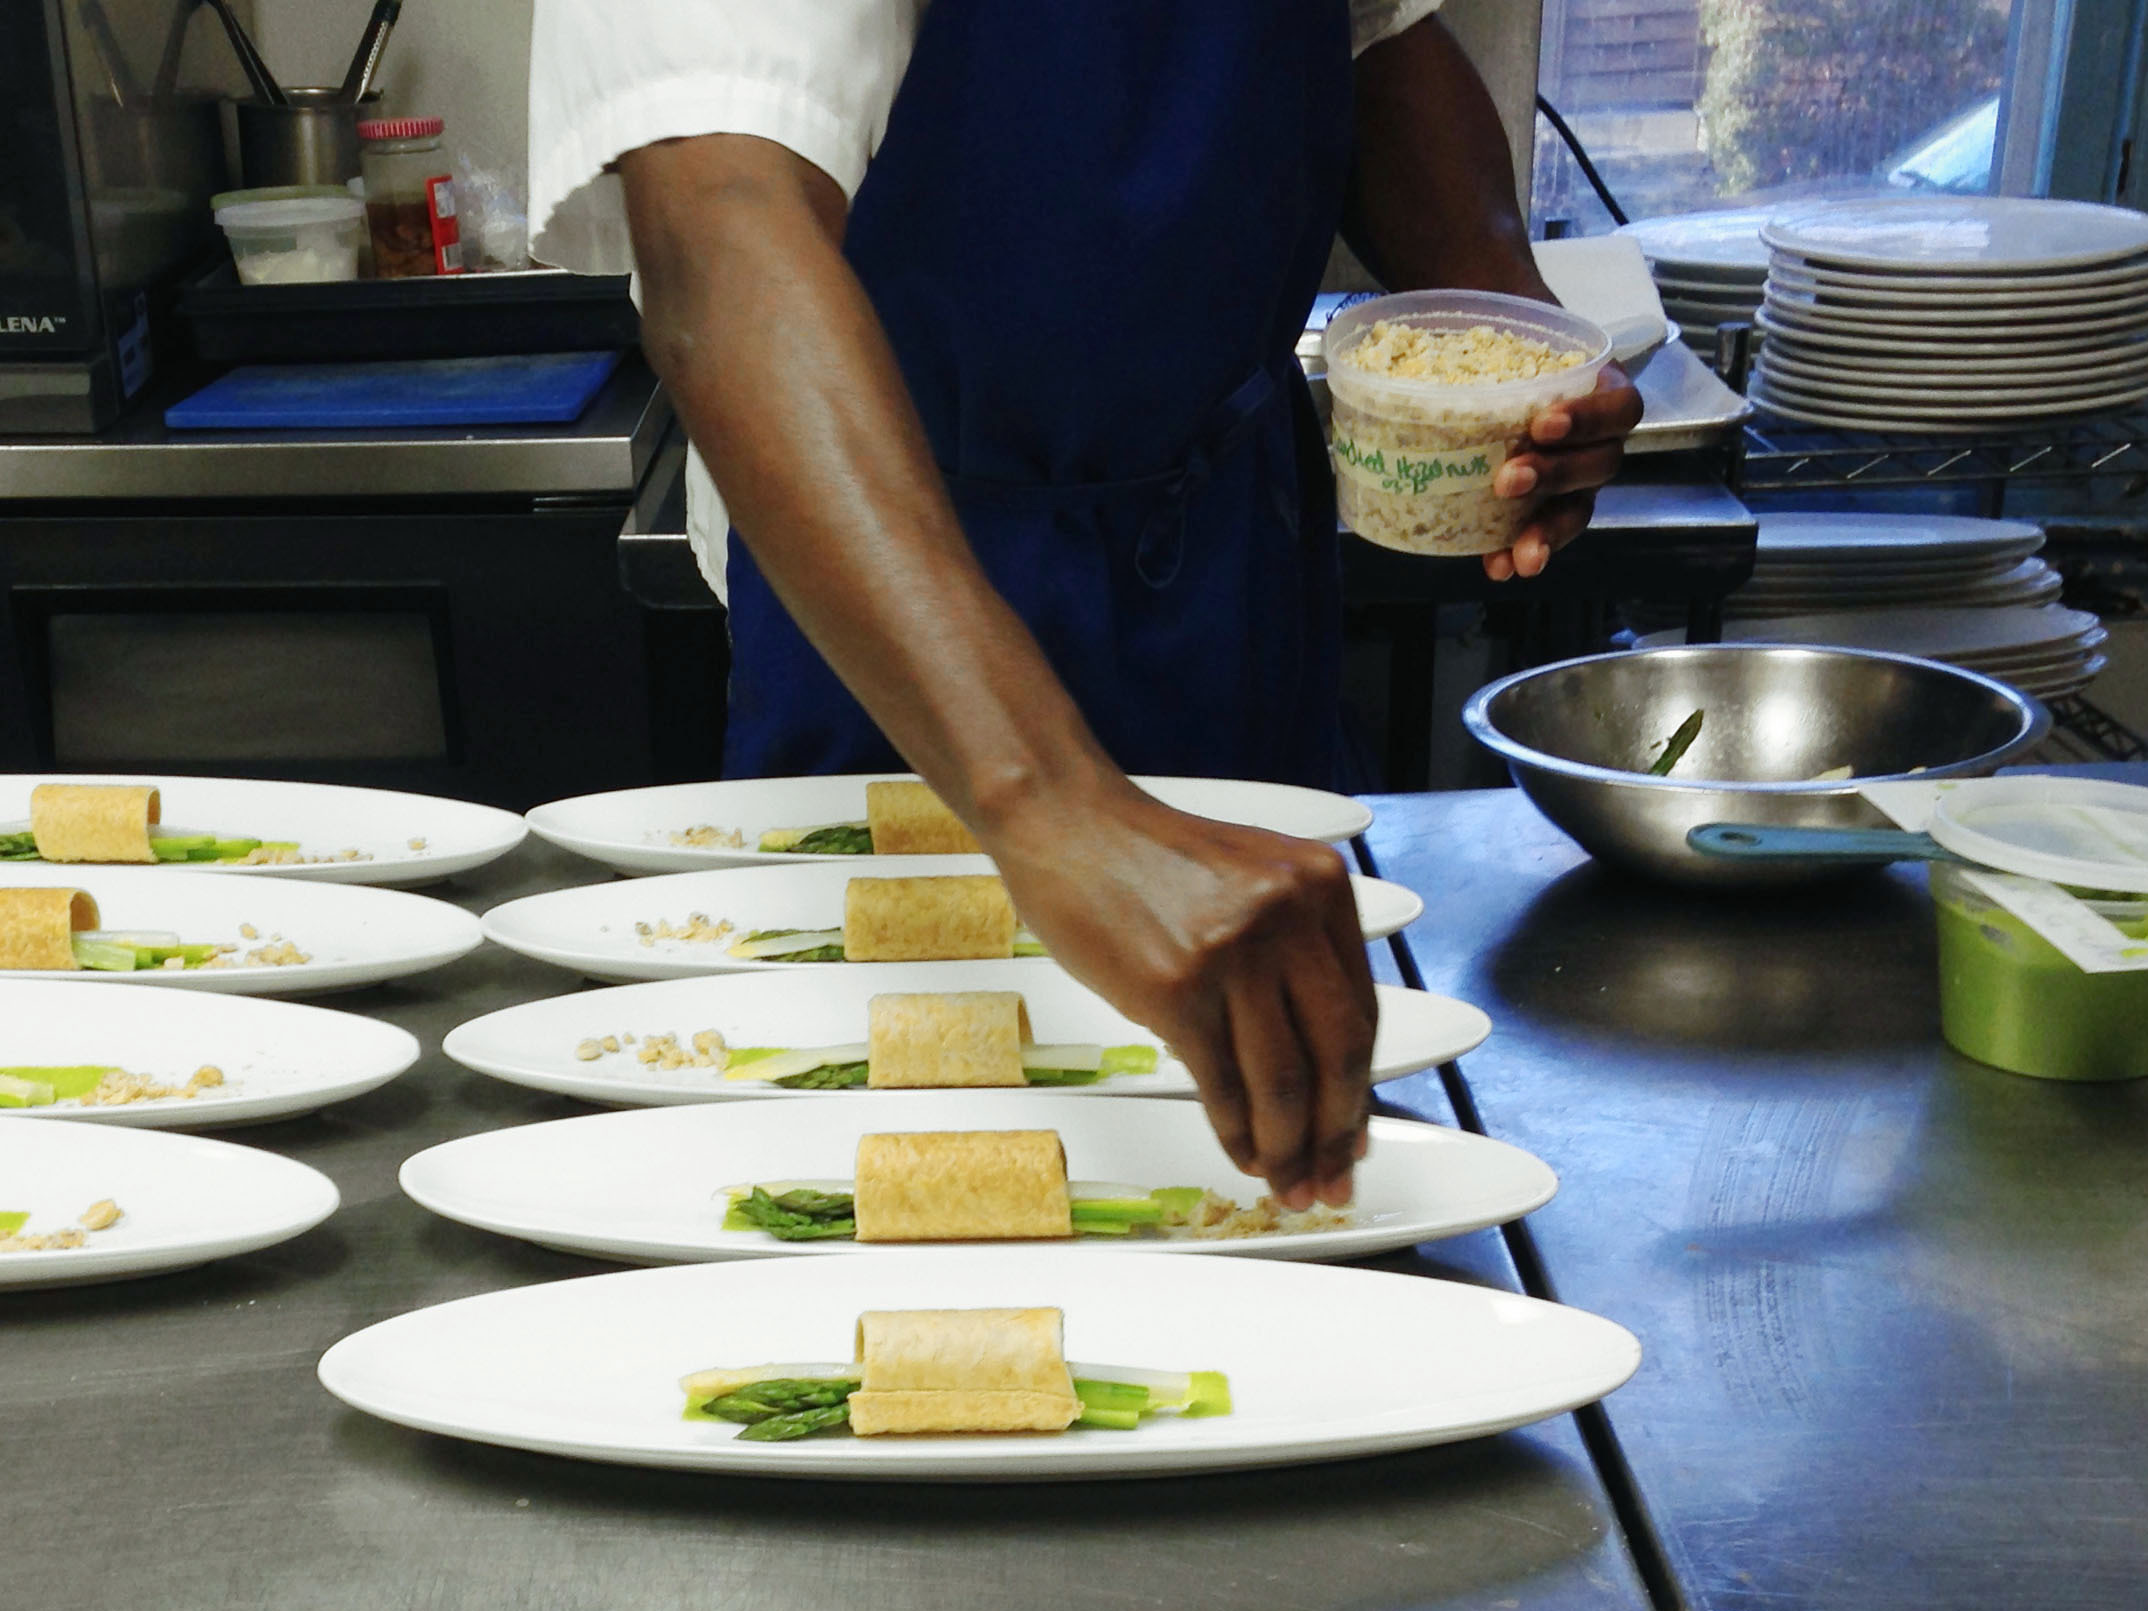 For A More Ordered Life, Organize Like A Chef